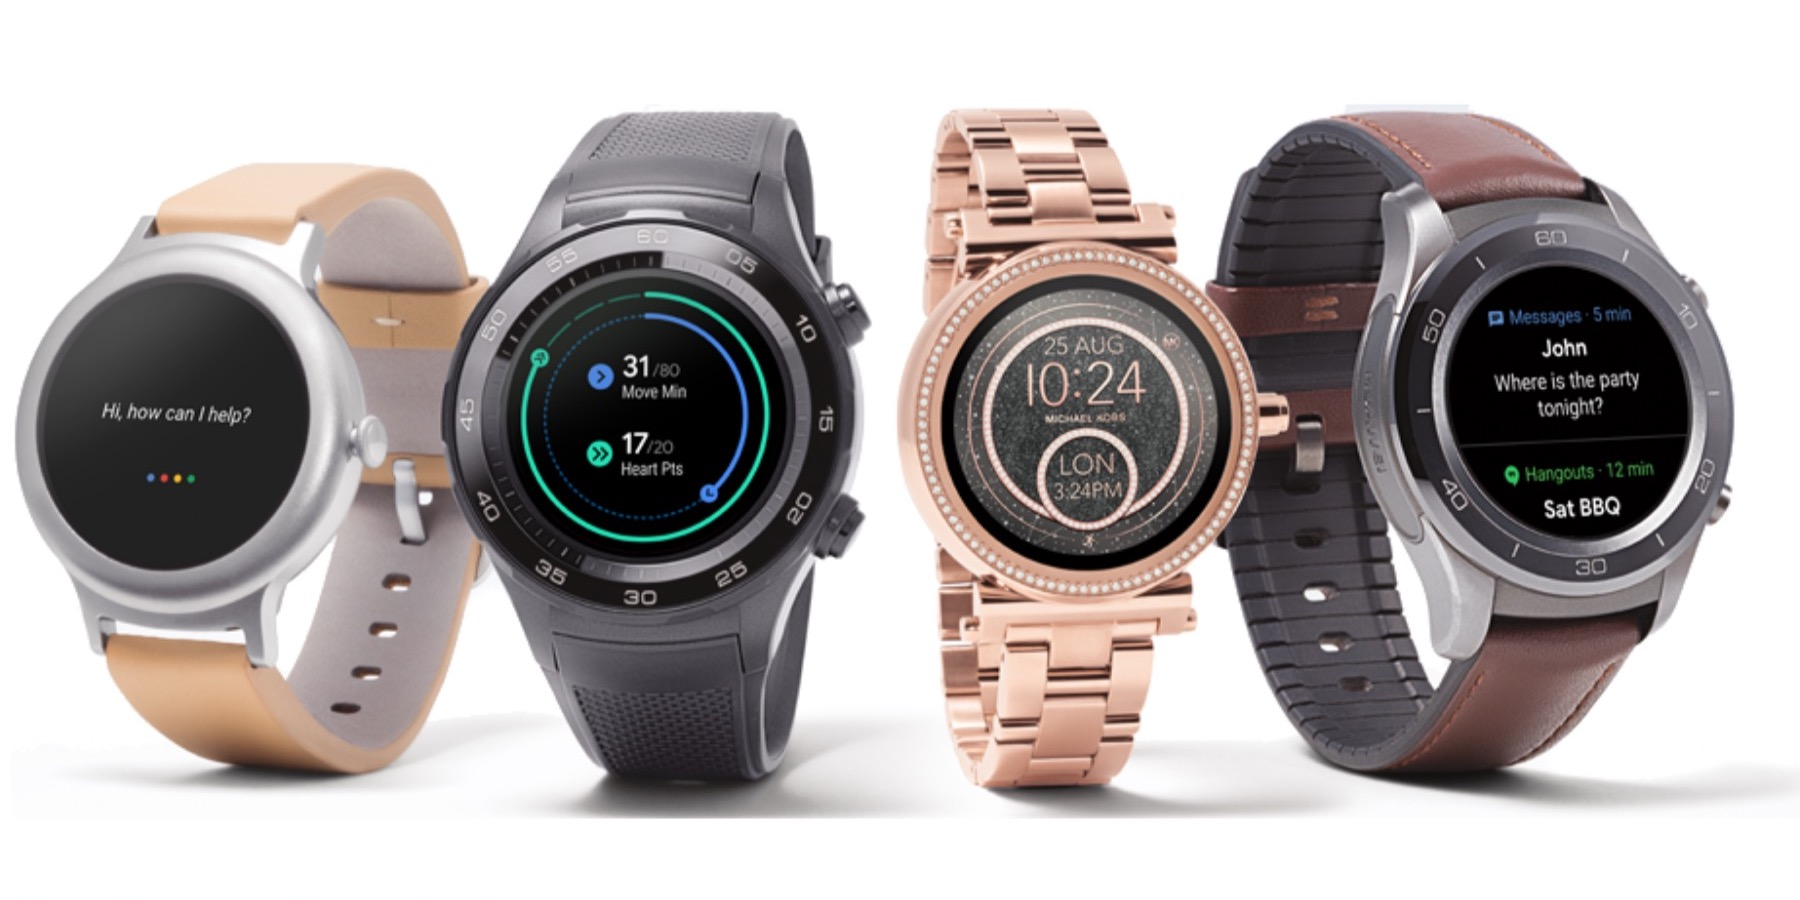 fossil group montblanc louis vuitton will launch first wear os watches w snapdragon wear 3100